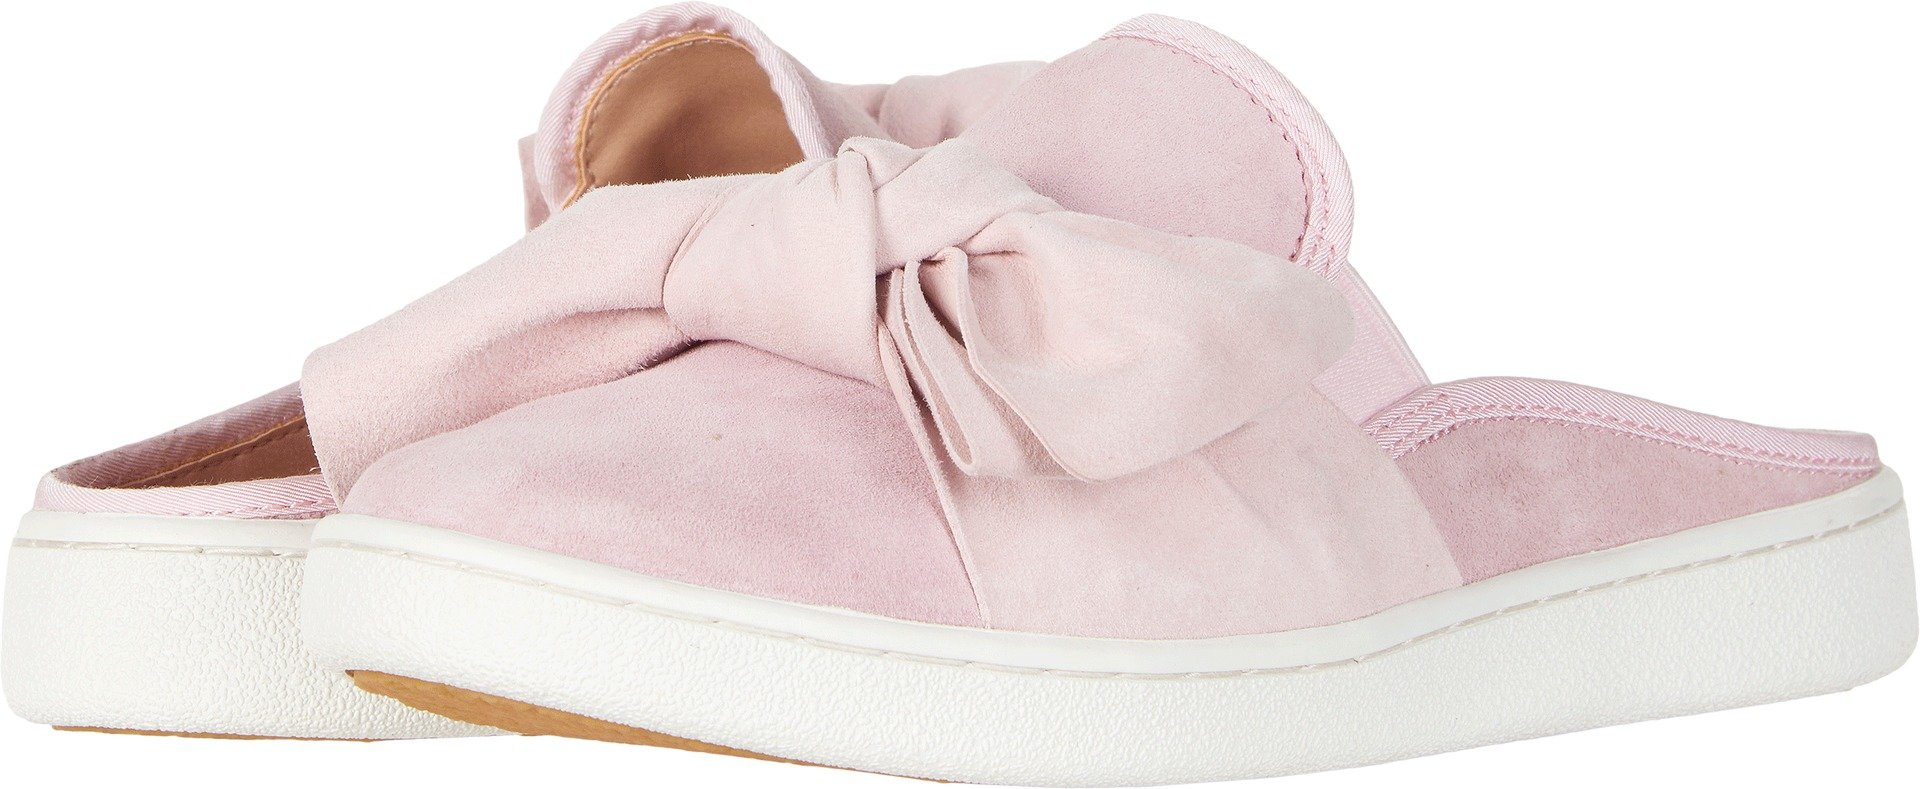 UGG Womens Luci Bow Seashell Pink 10 B - Medium by UGG